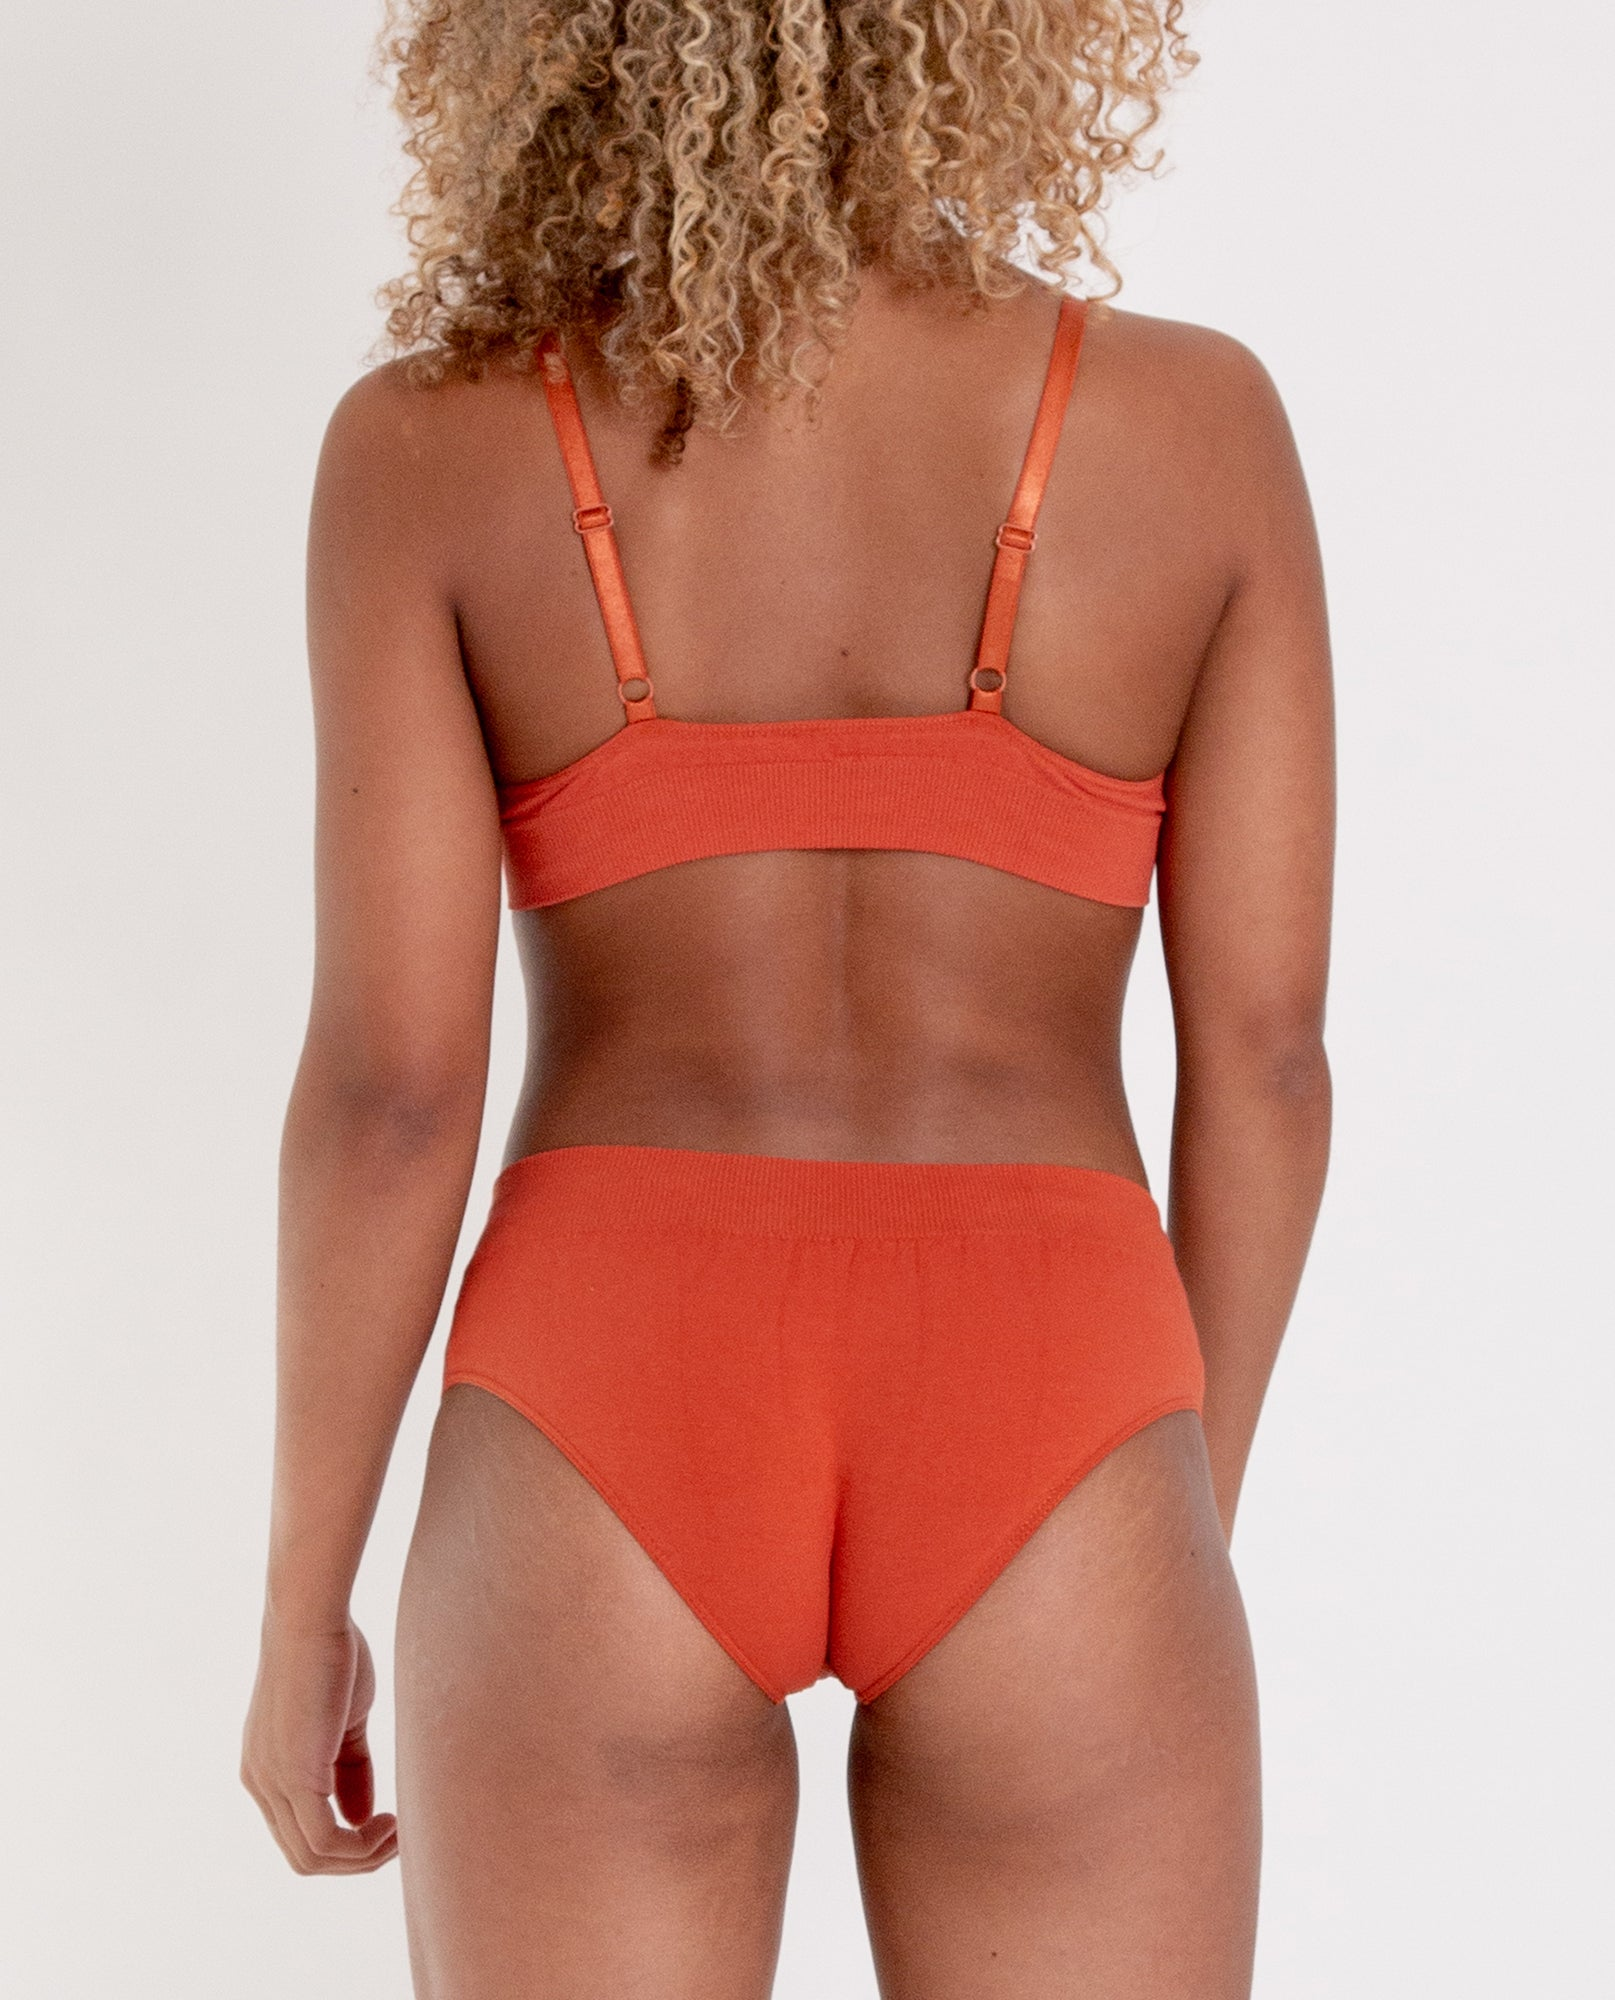 VINETA Organic Cotton Knickers In Madder